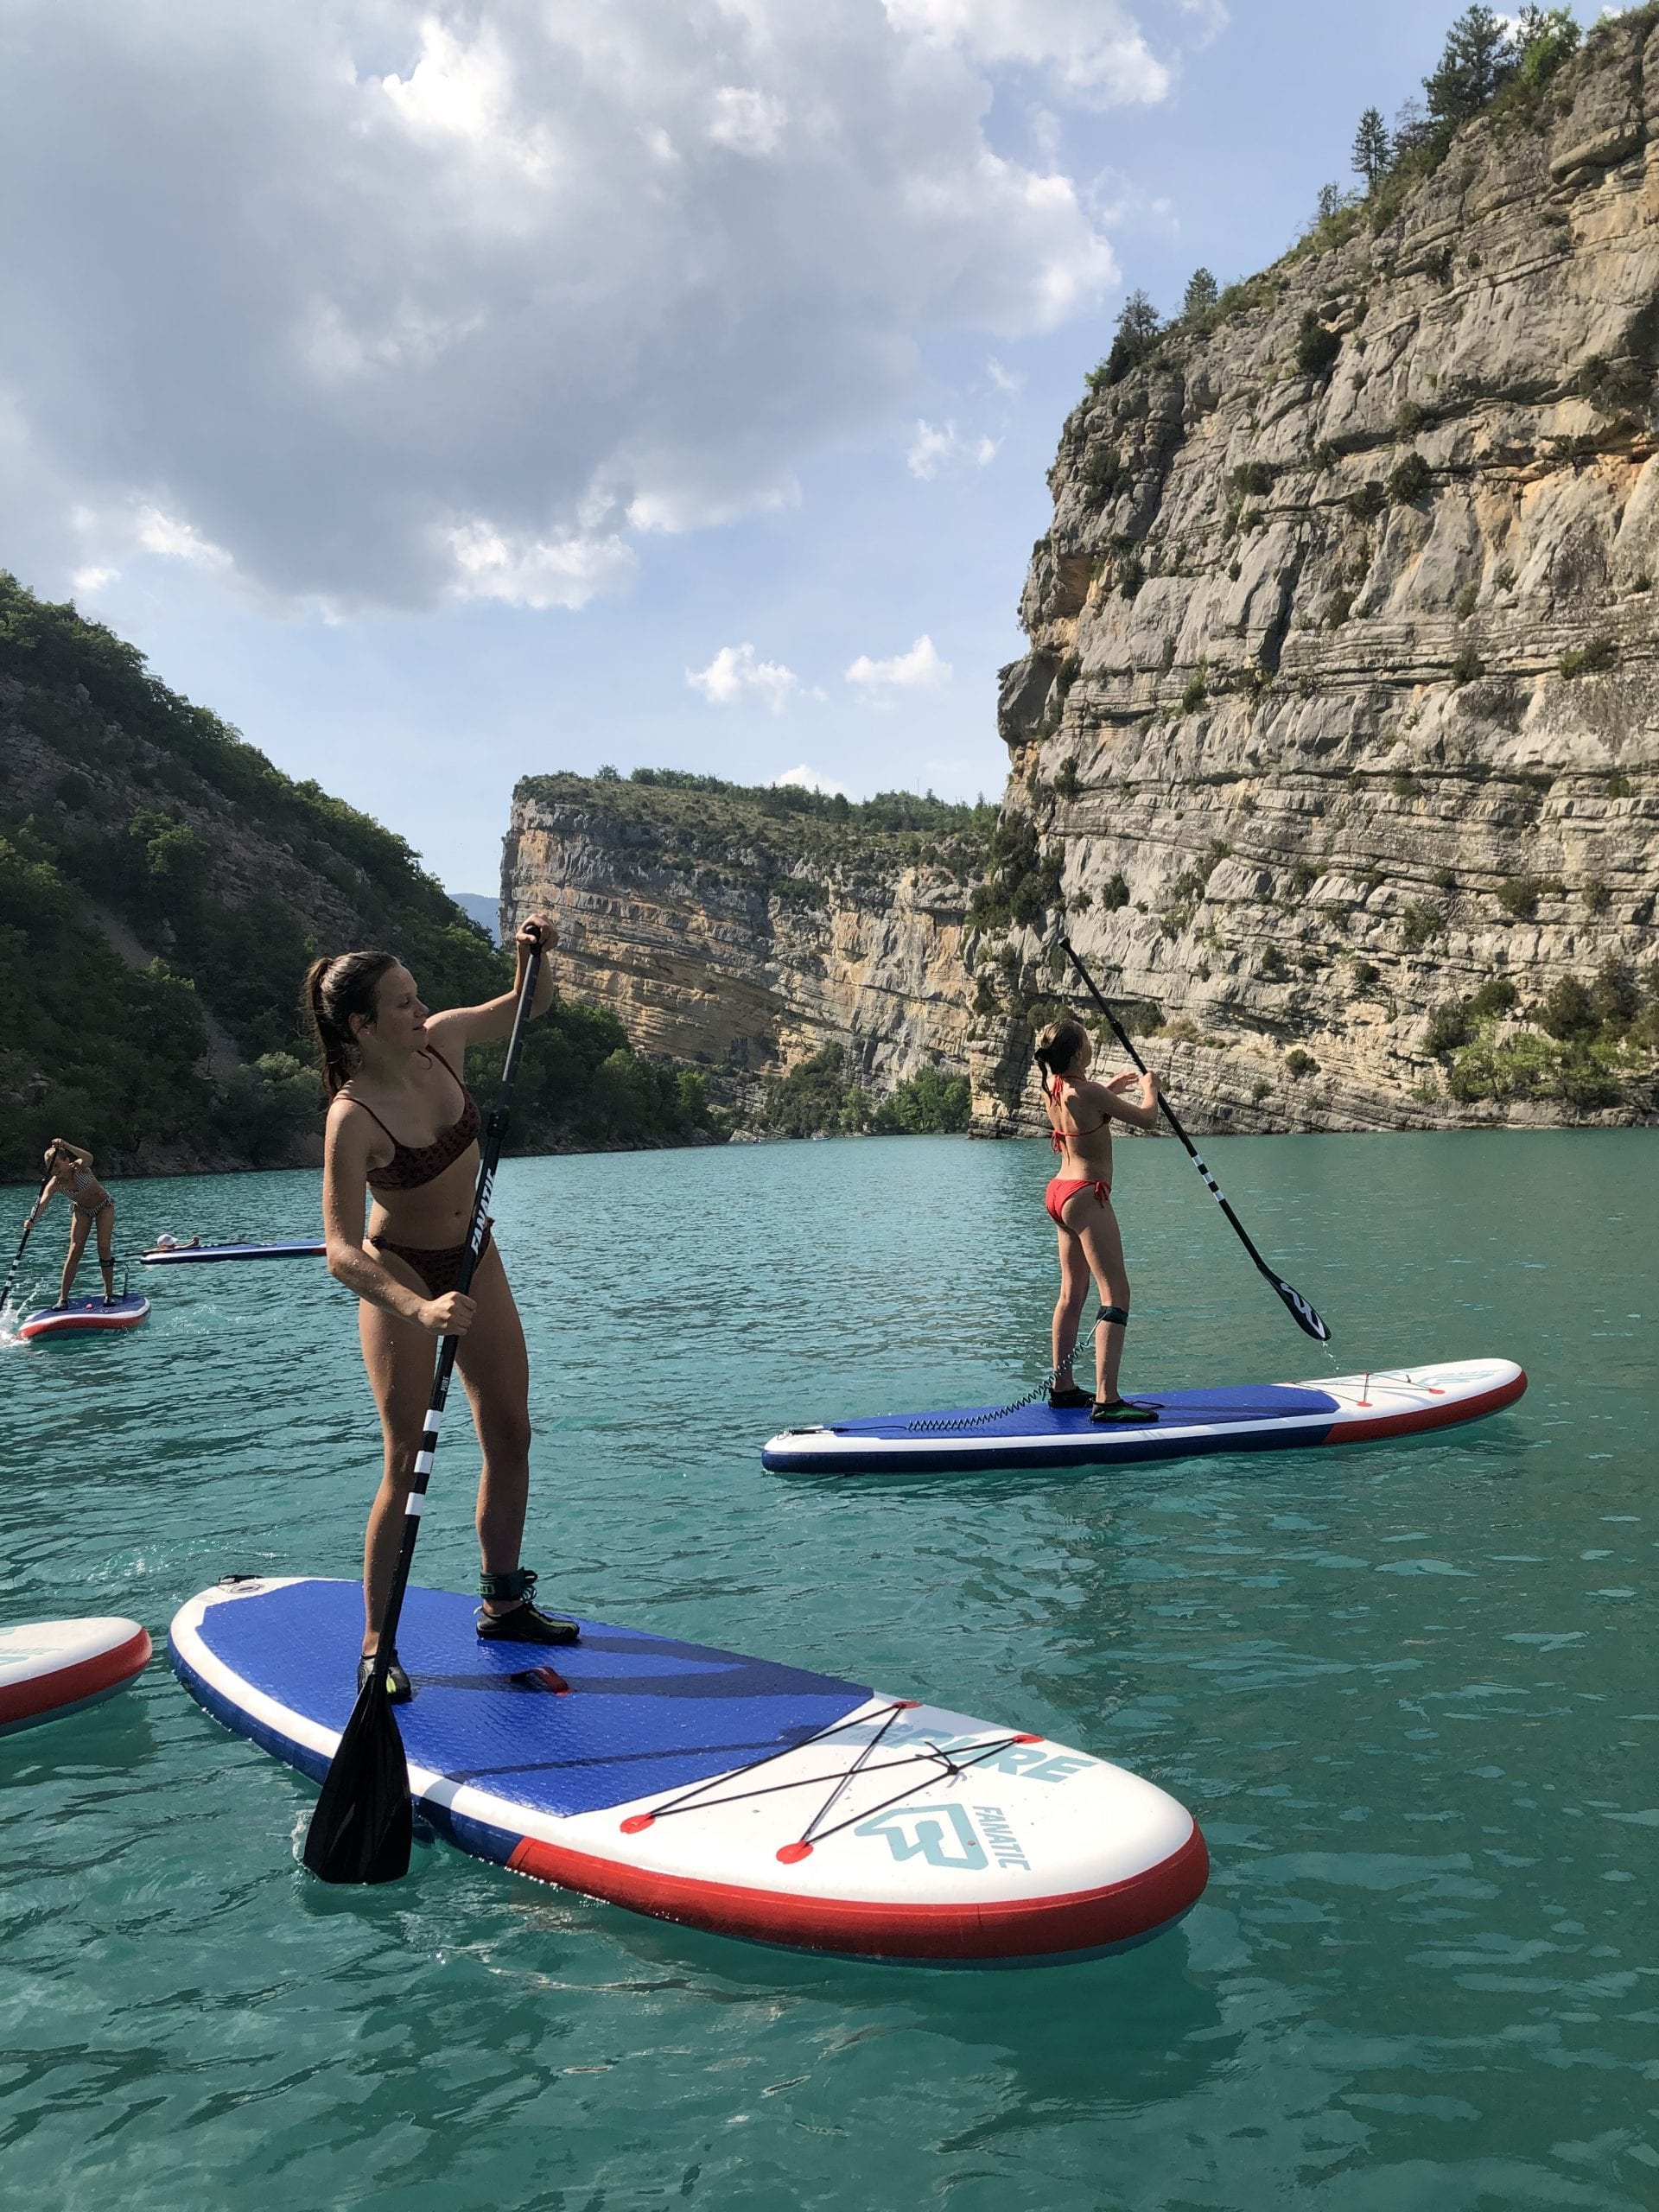 Discovery of the Paddle in the Verdon